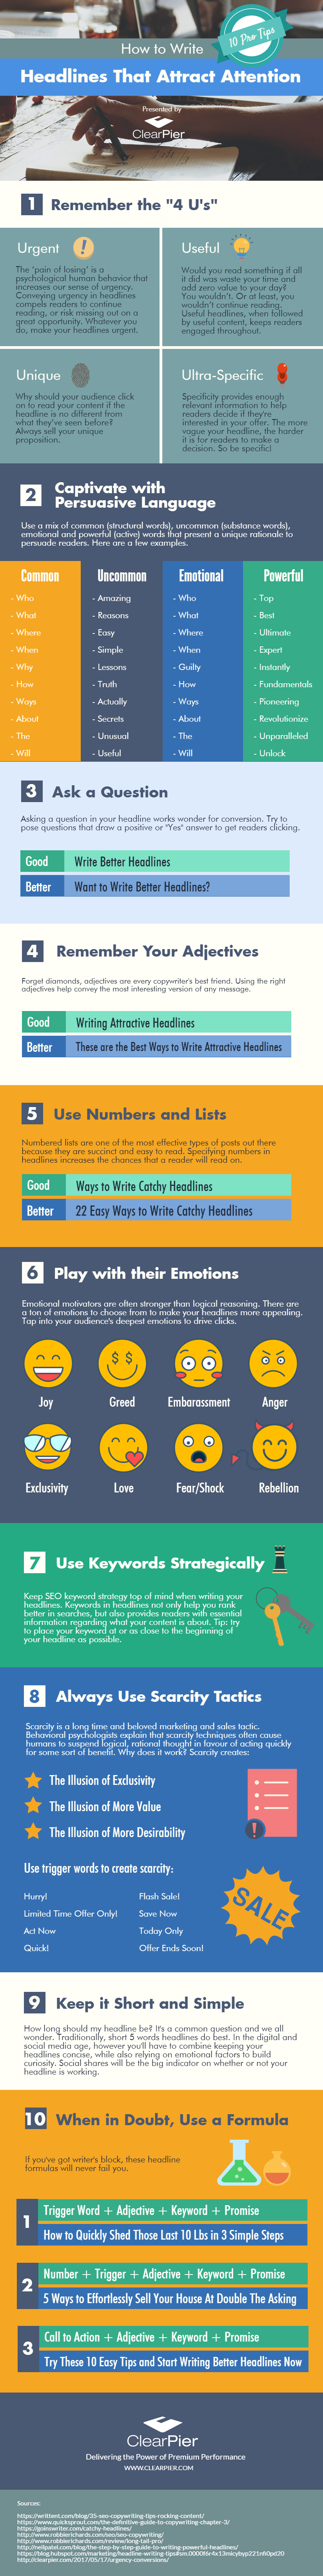 How to write headlines that attract attention, an infographic